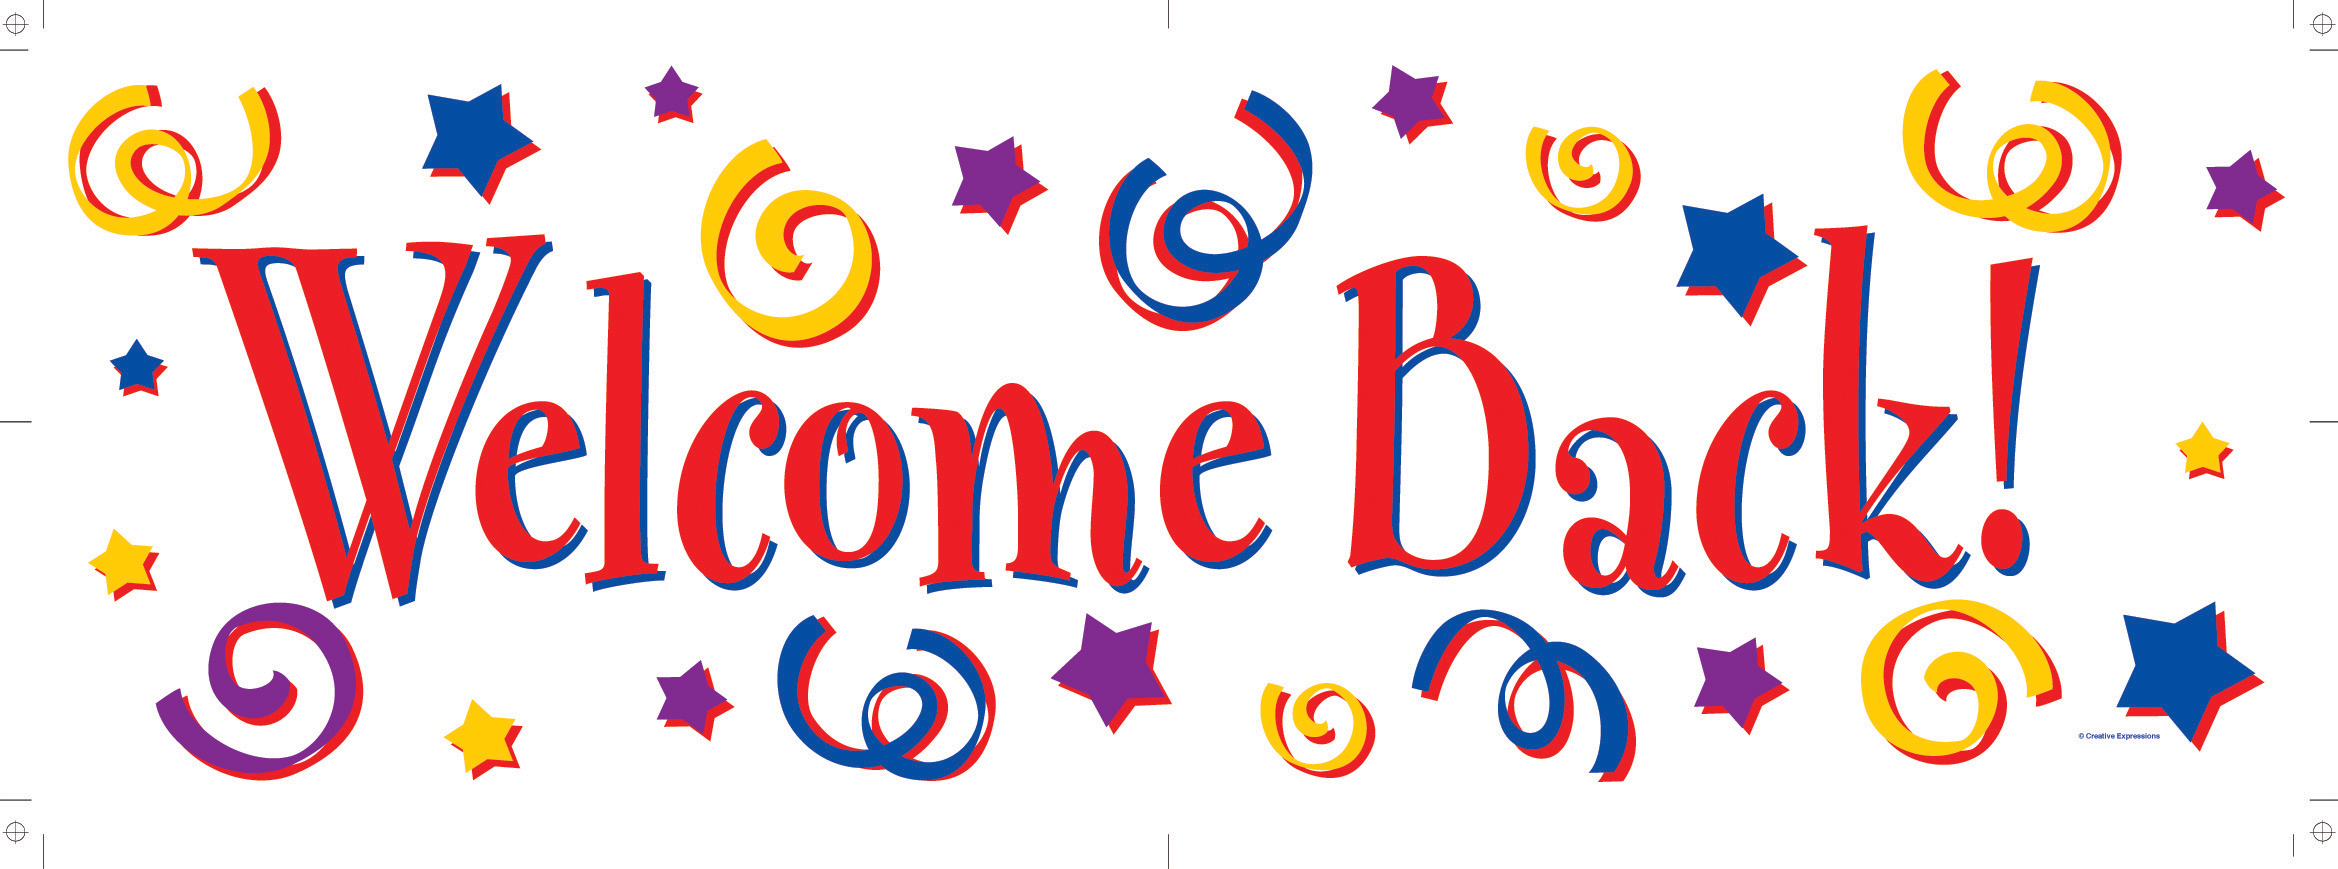 Welcome Back To Work Clipart Galleries Related Welcome Back